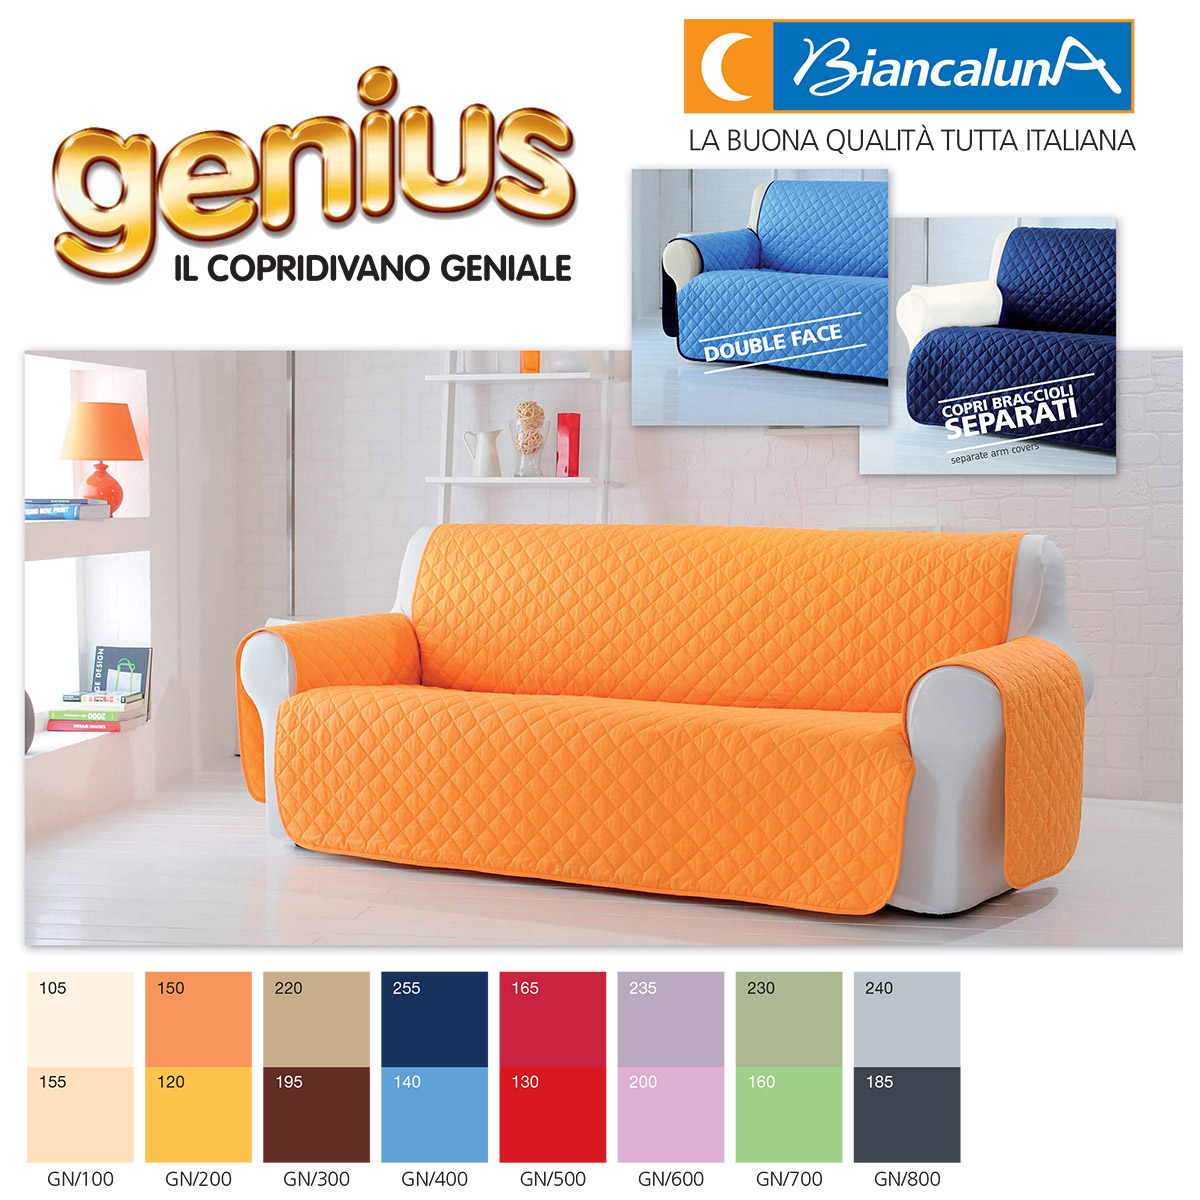 Genius Copridivani Genius Copridivani Catalogo Collection With Genius